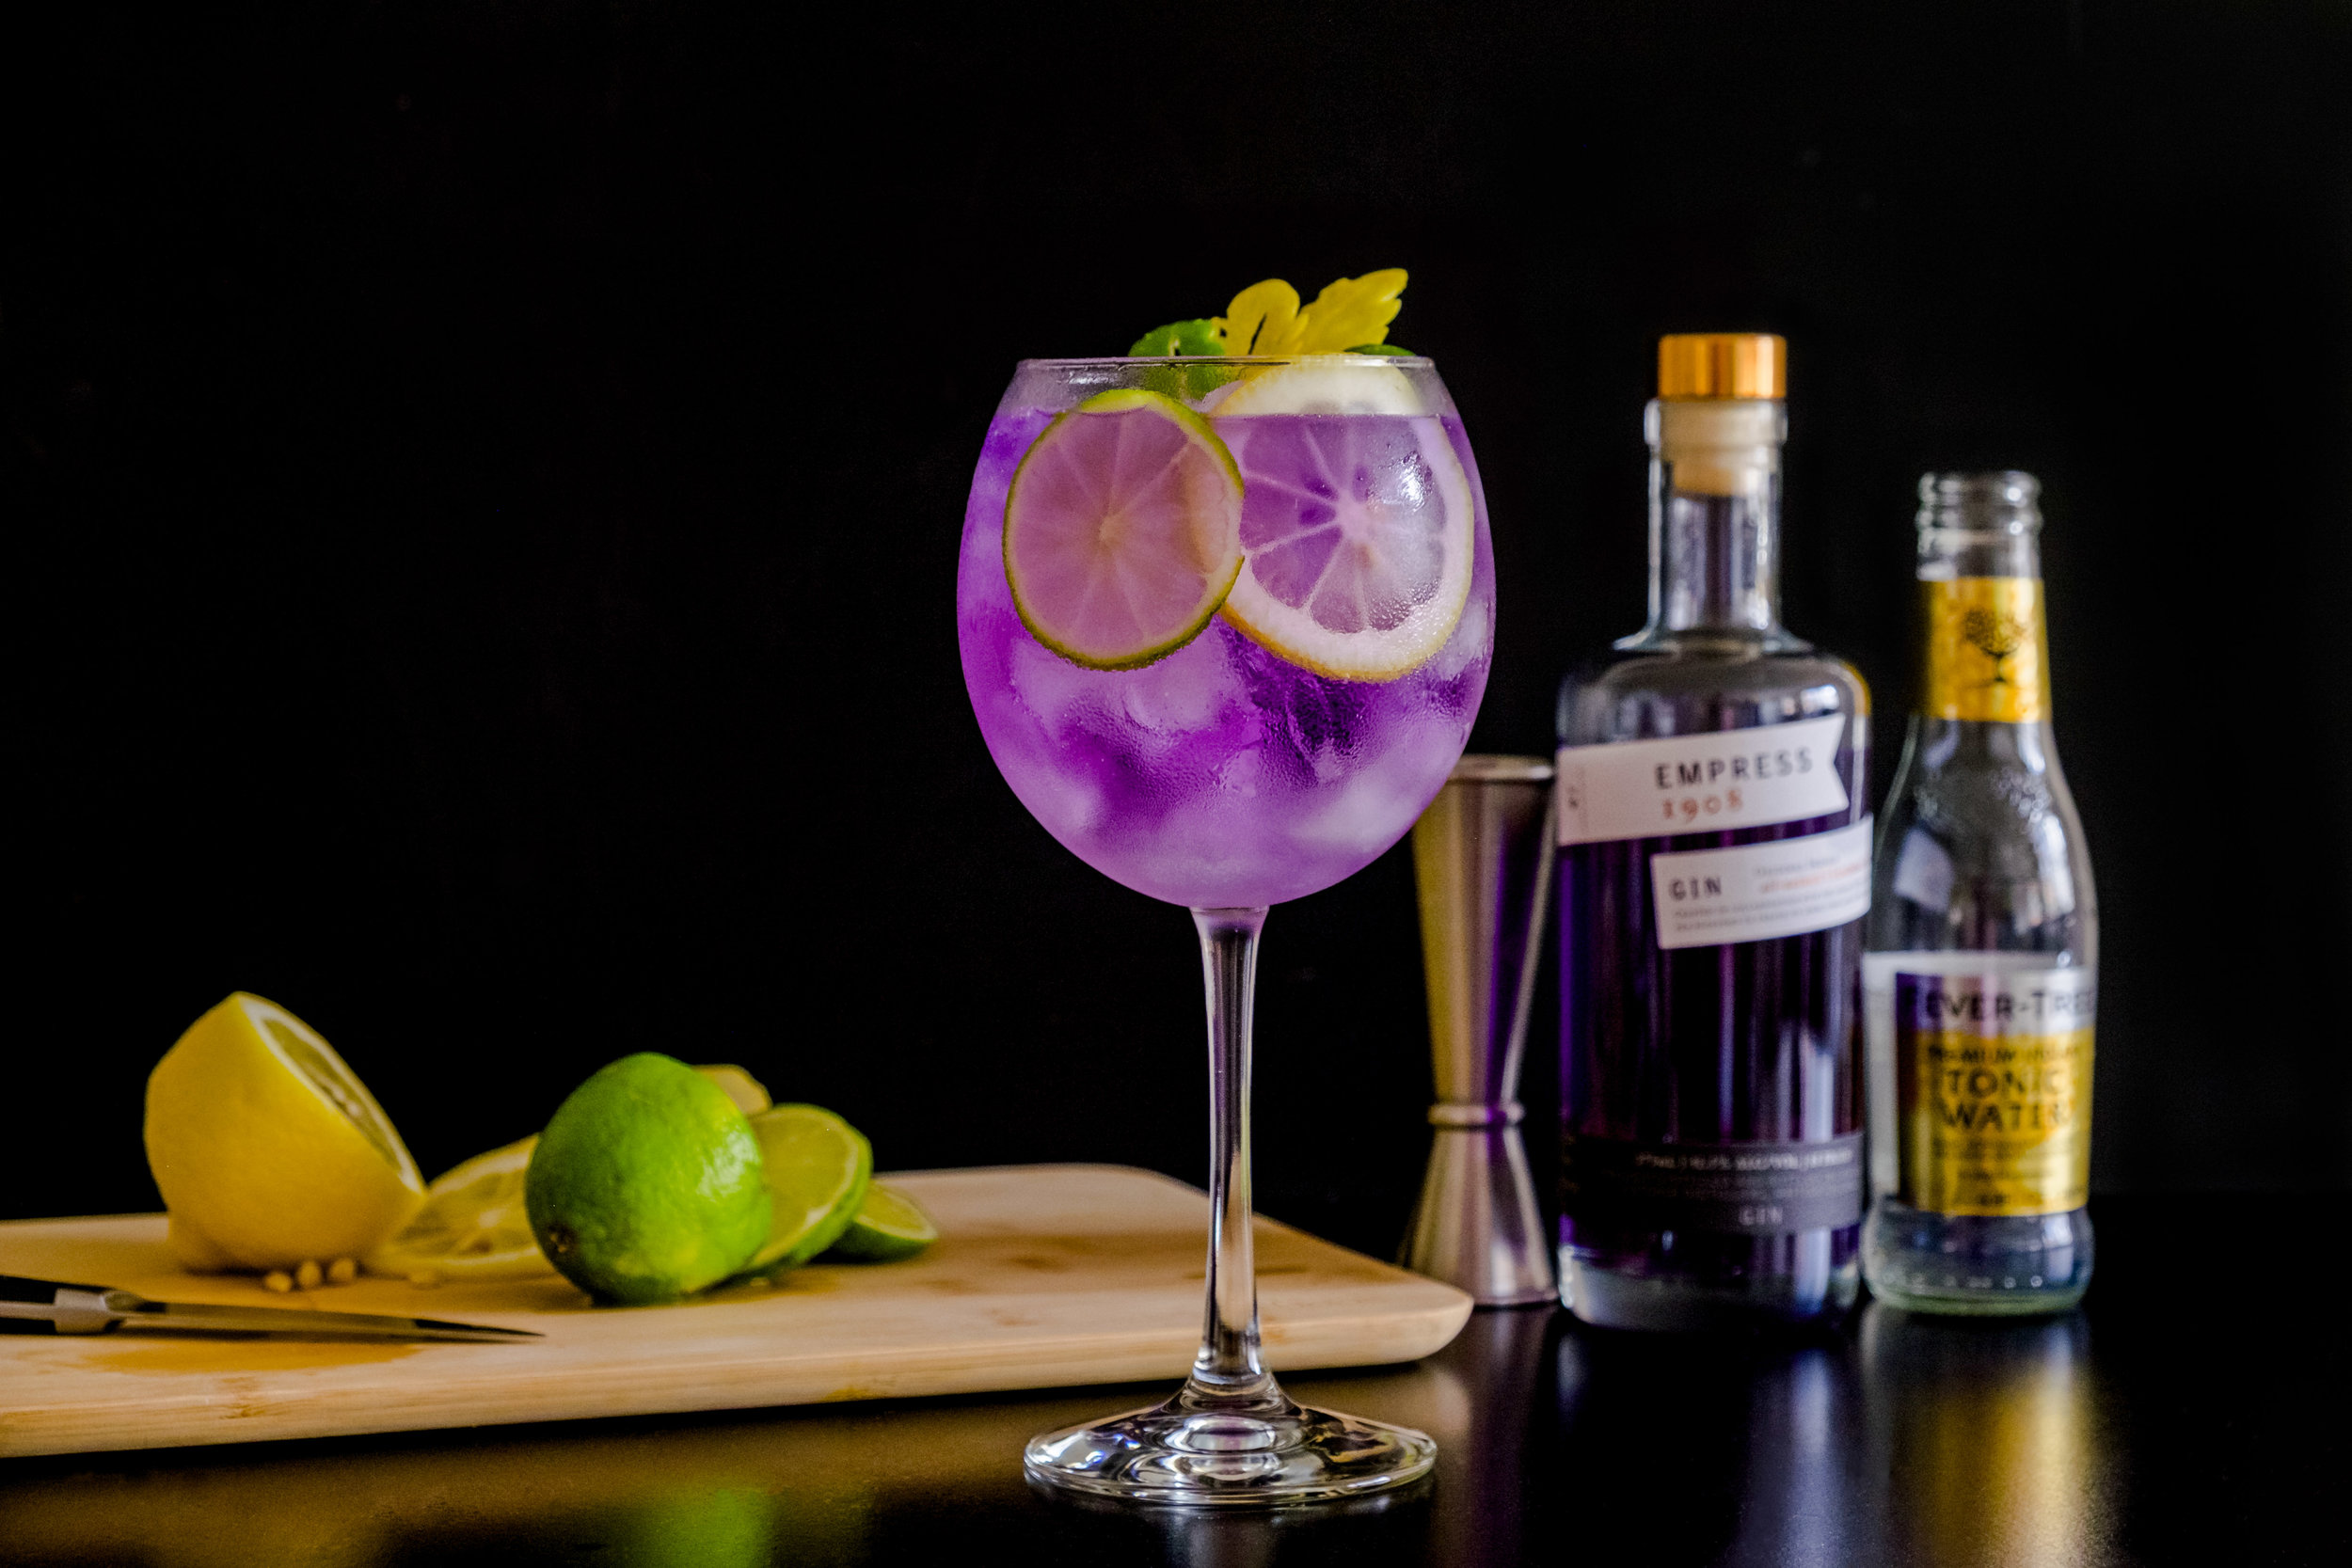 A sample of Empress Gin was received for this photo.